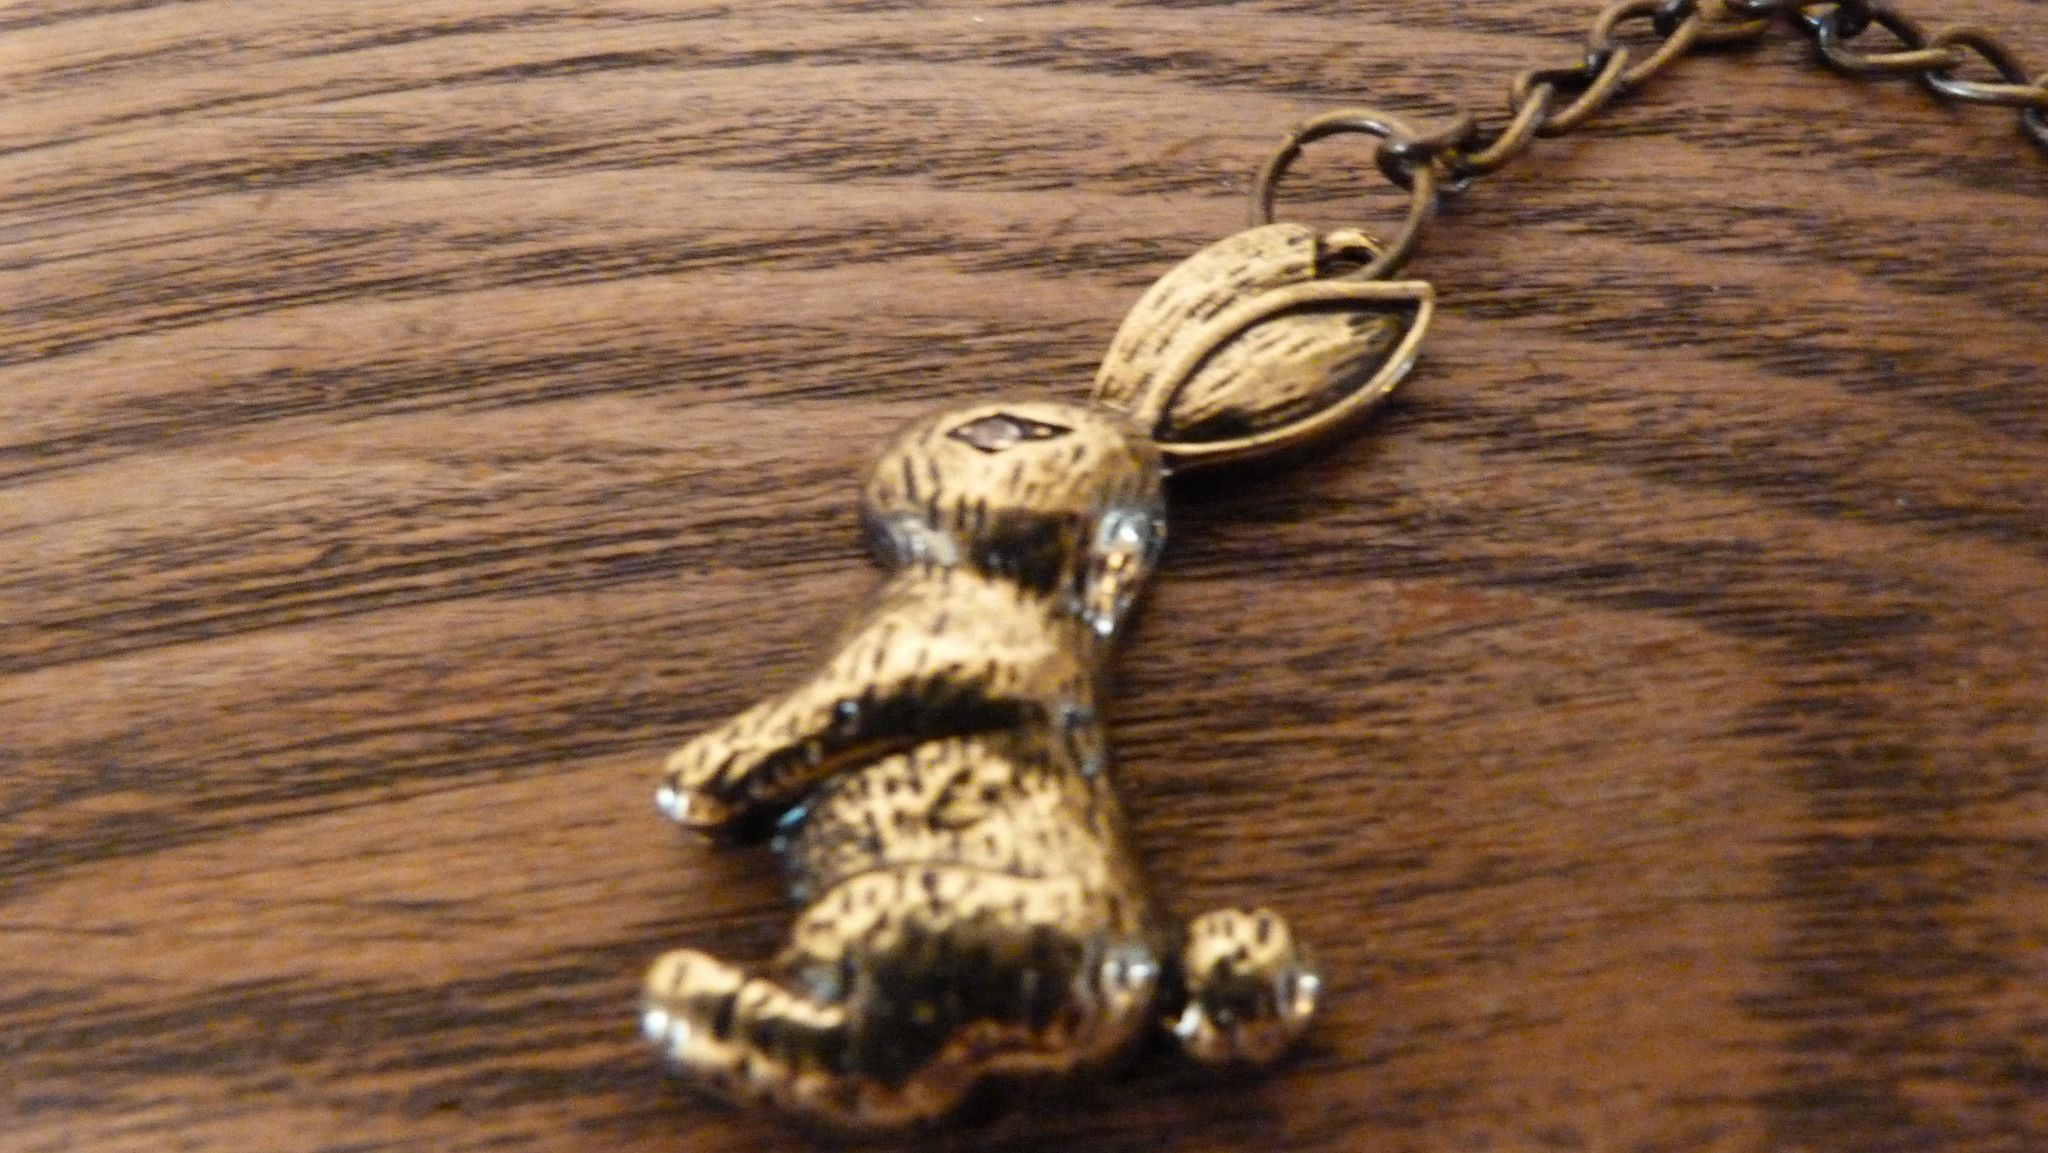 March Hare Keychain